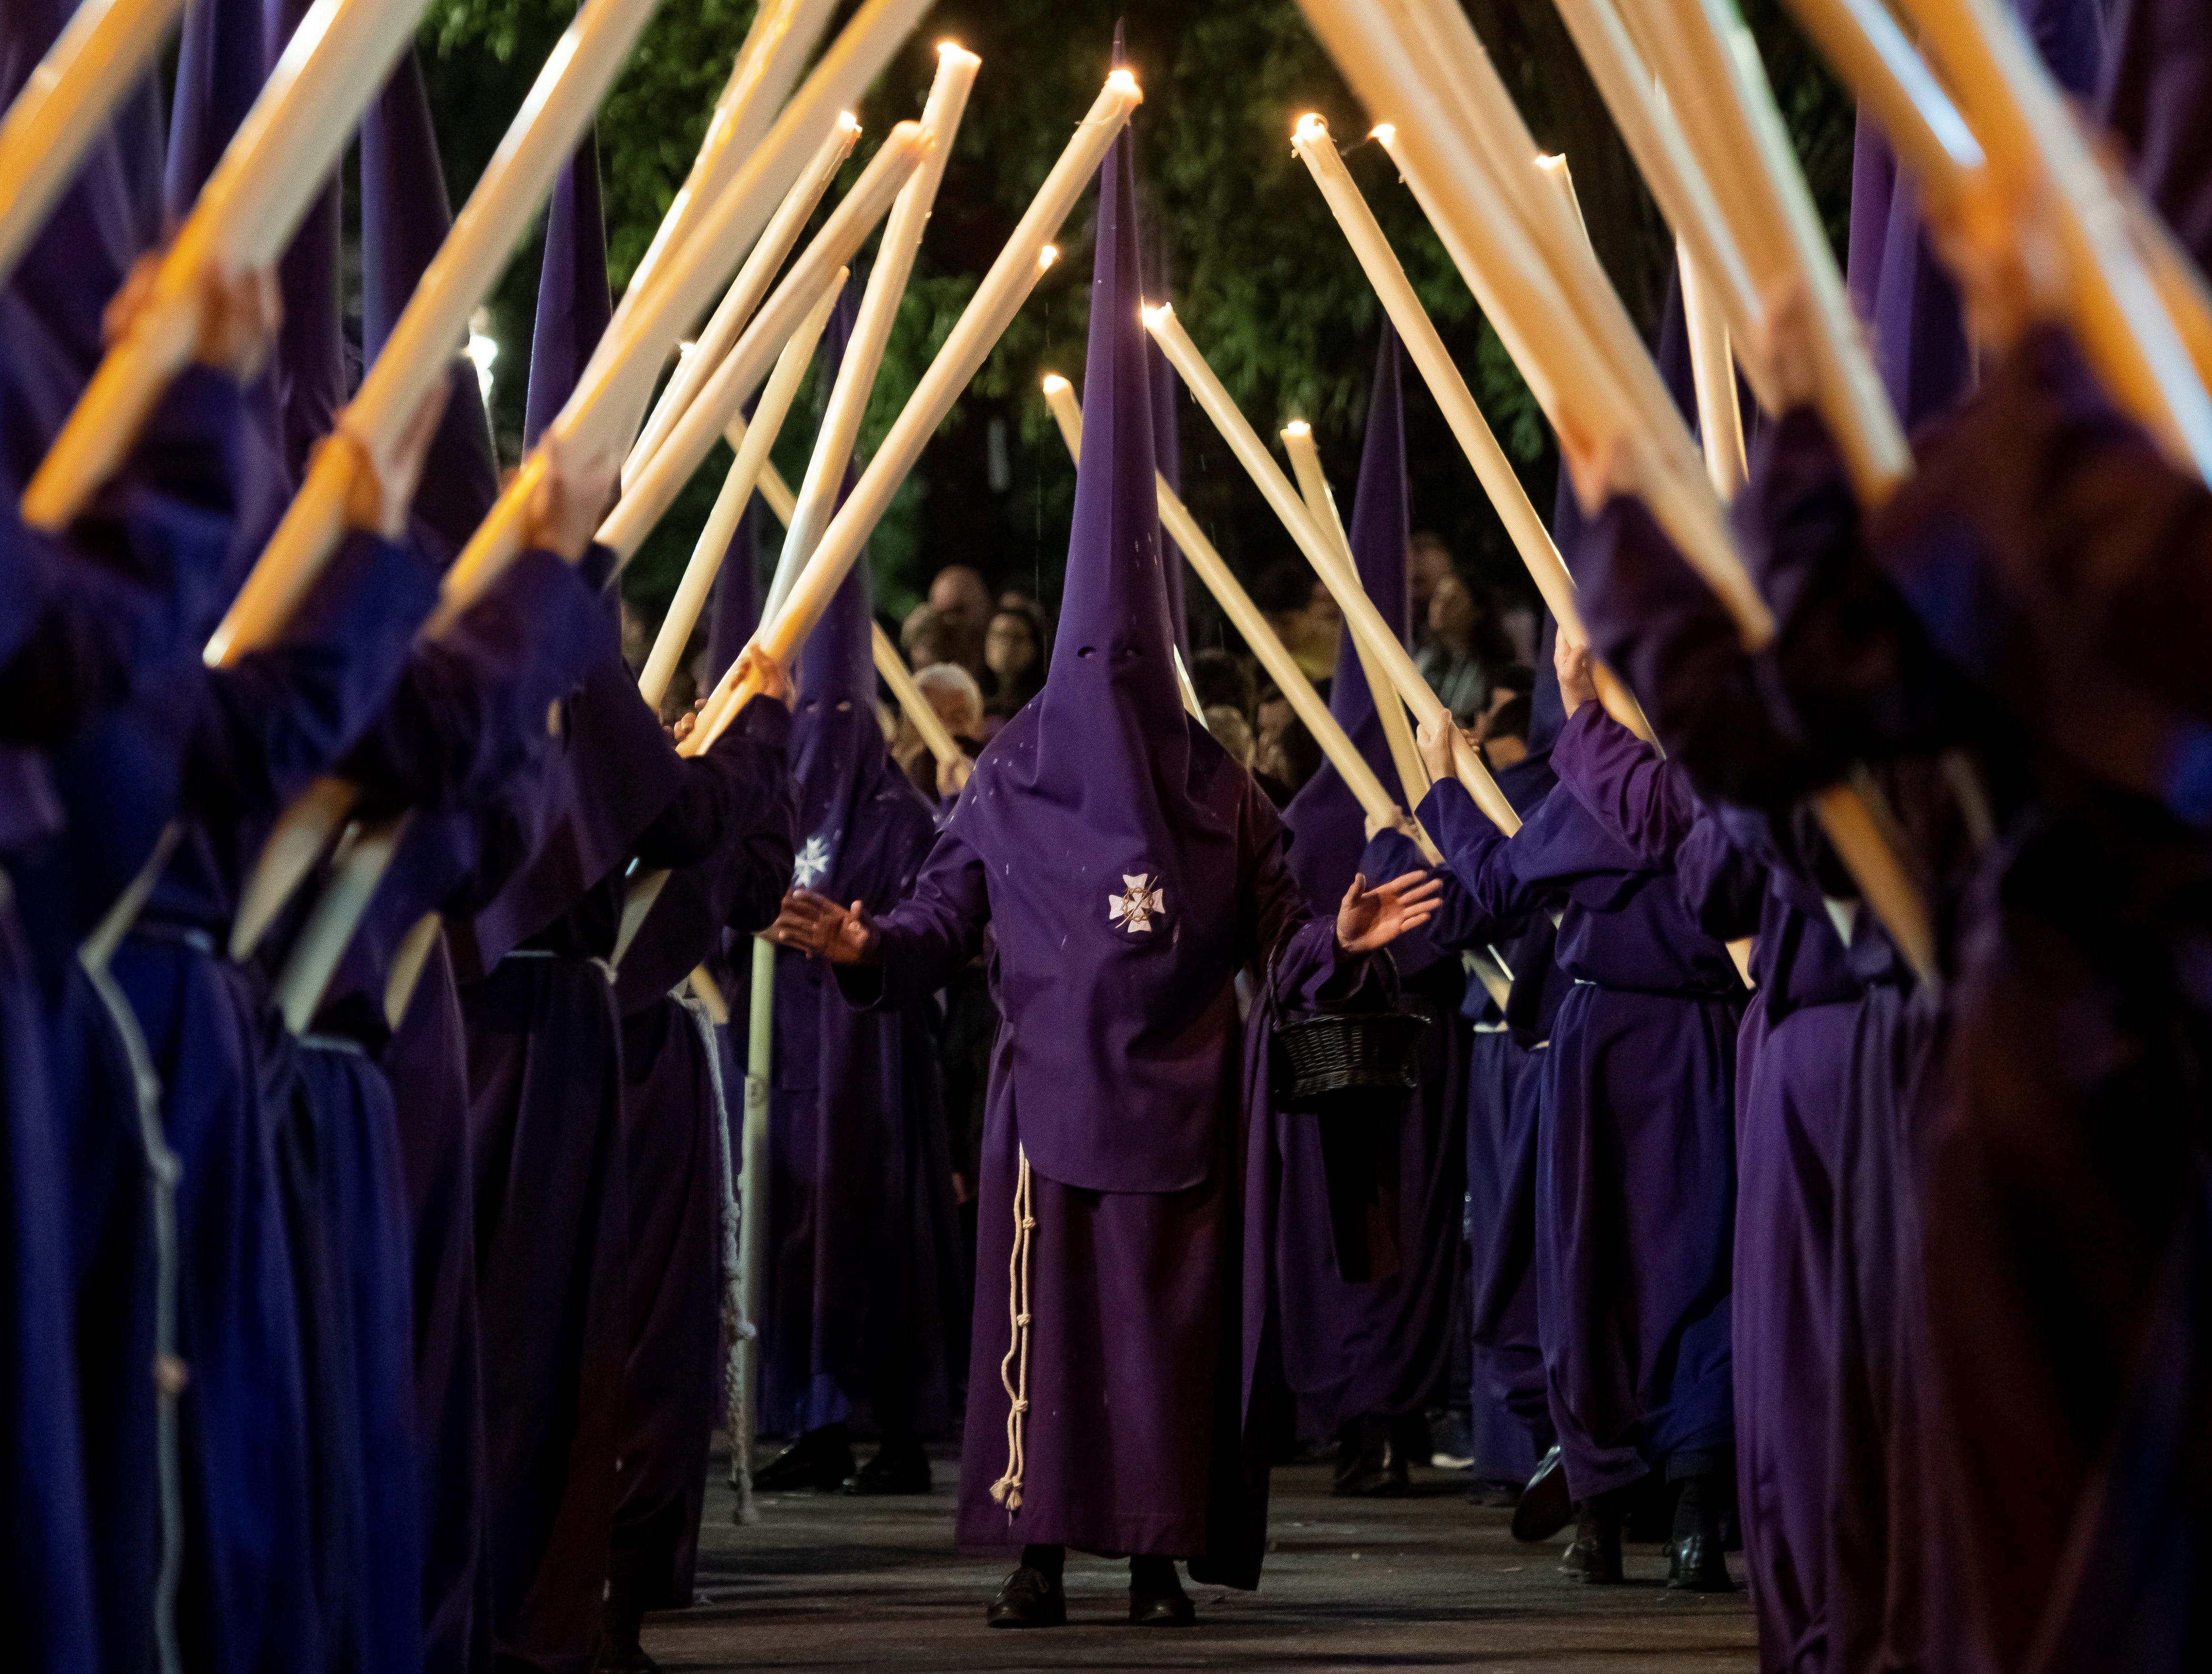 'Nazarenos' take part ing the 'The Valey' religious procession on Maundy Thursday duringof the Holy Week celebrations in Seville, Andalusia, Spain on April 18, 2019.